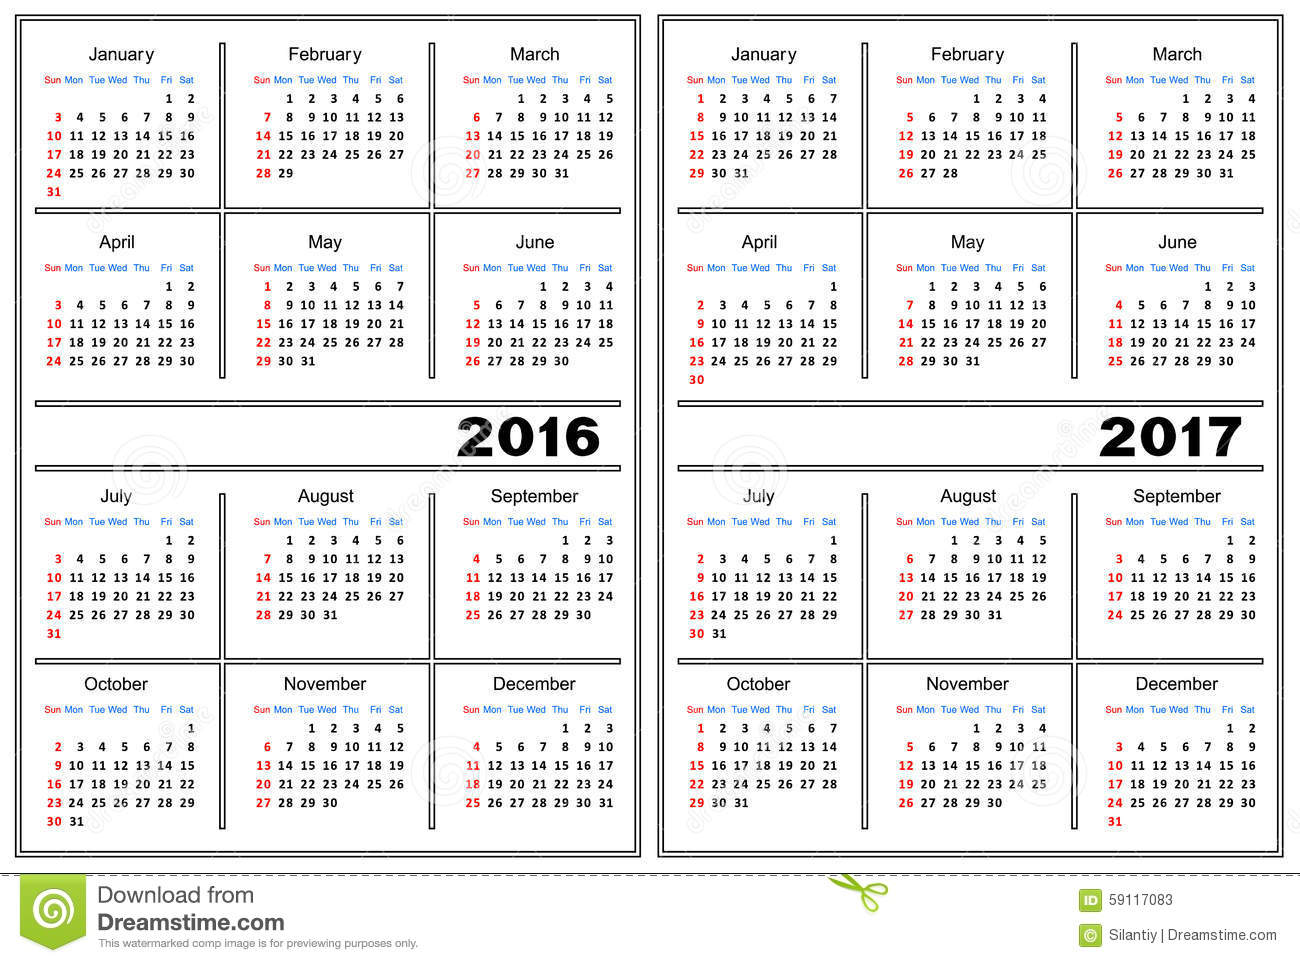 Template of a calendar of white color. A calendar for 2016 and 2017.